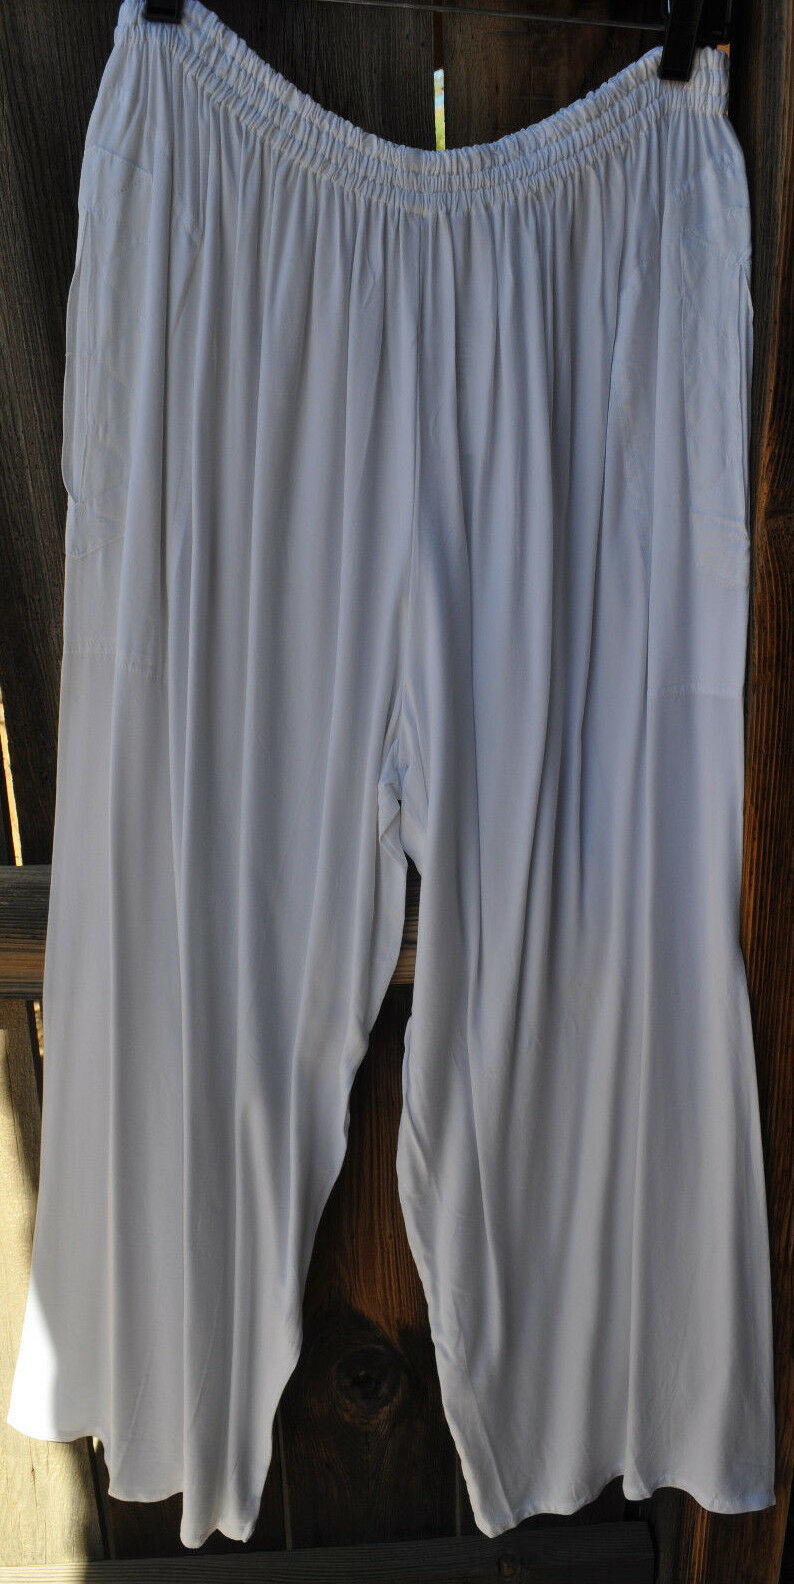 ART TO WEAR ANACAPA PANTS IN CLASSIC SOLID FLAT Weiß BY MISSION CANYON,OS+,